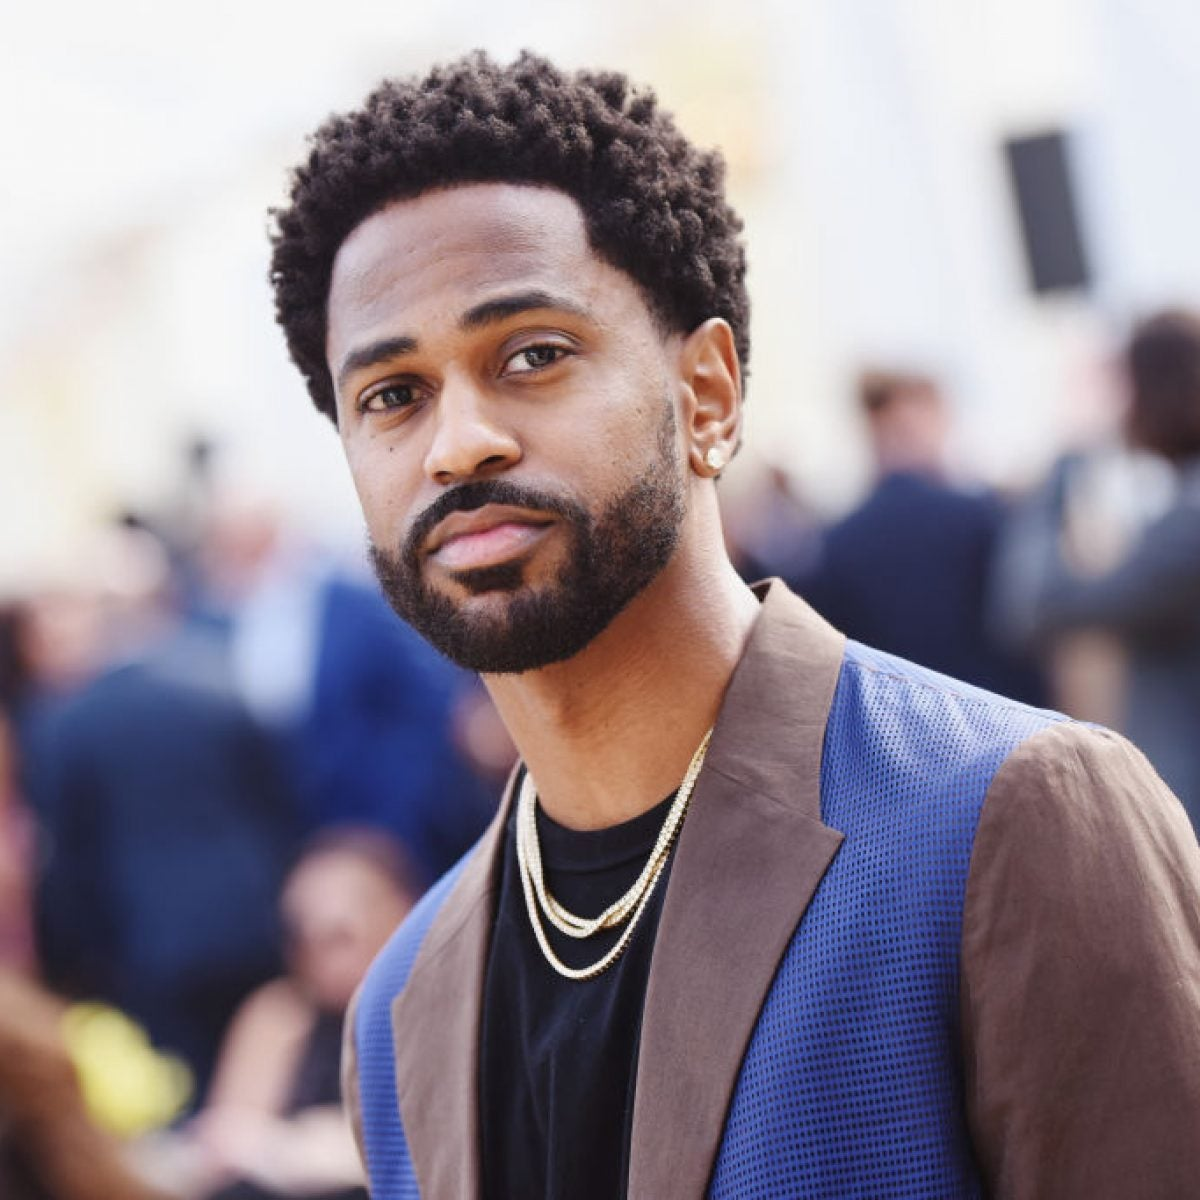 Big Sean Joins Forces With Ally Financial To Launch Financial Education Game Created By HBCU Students